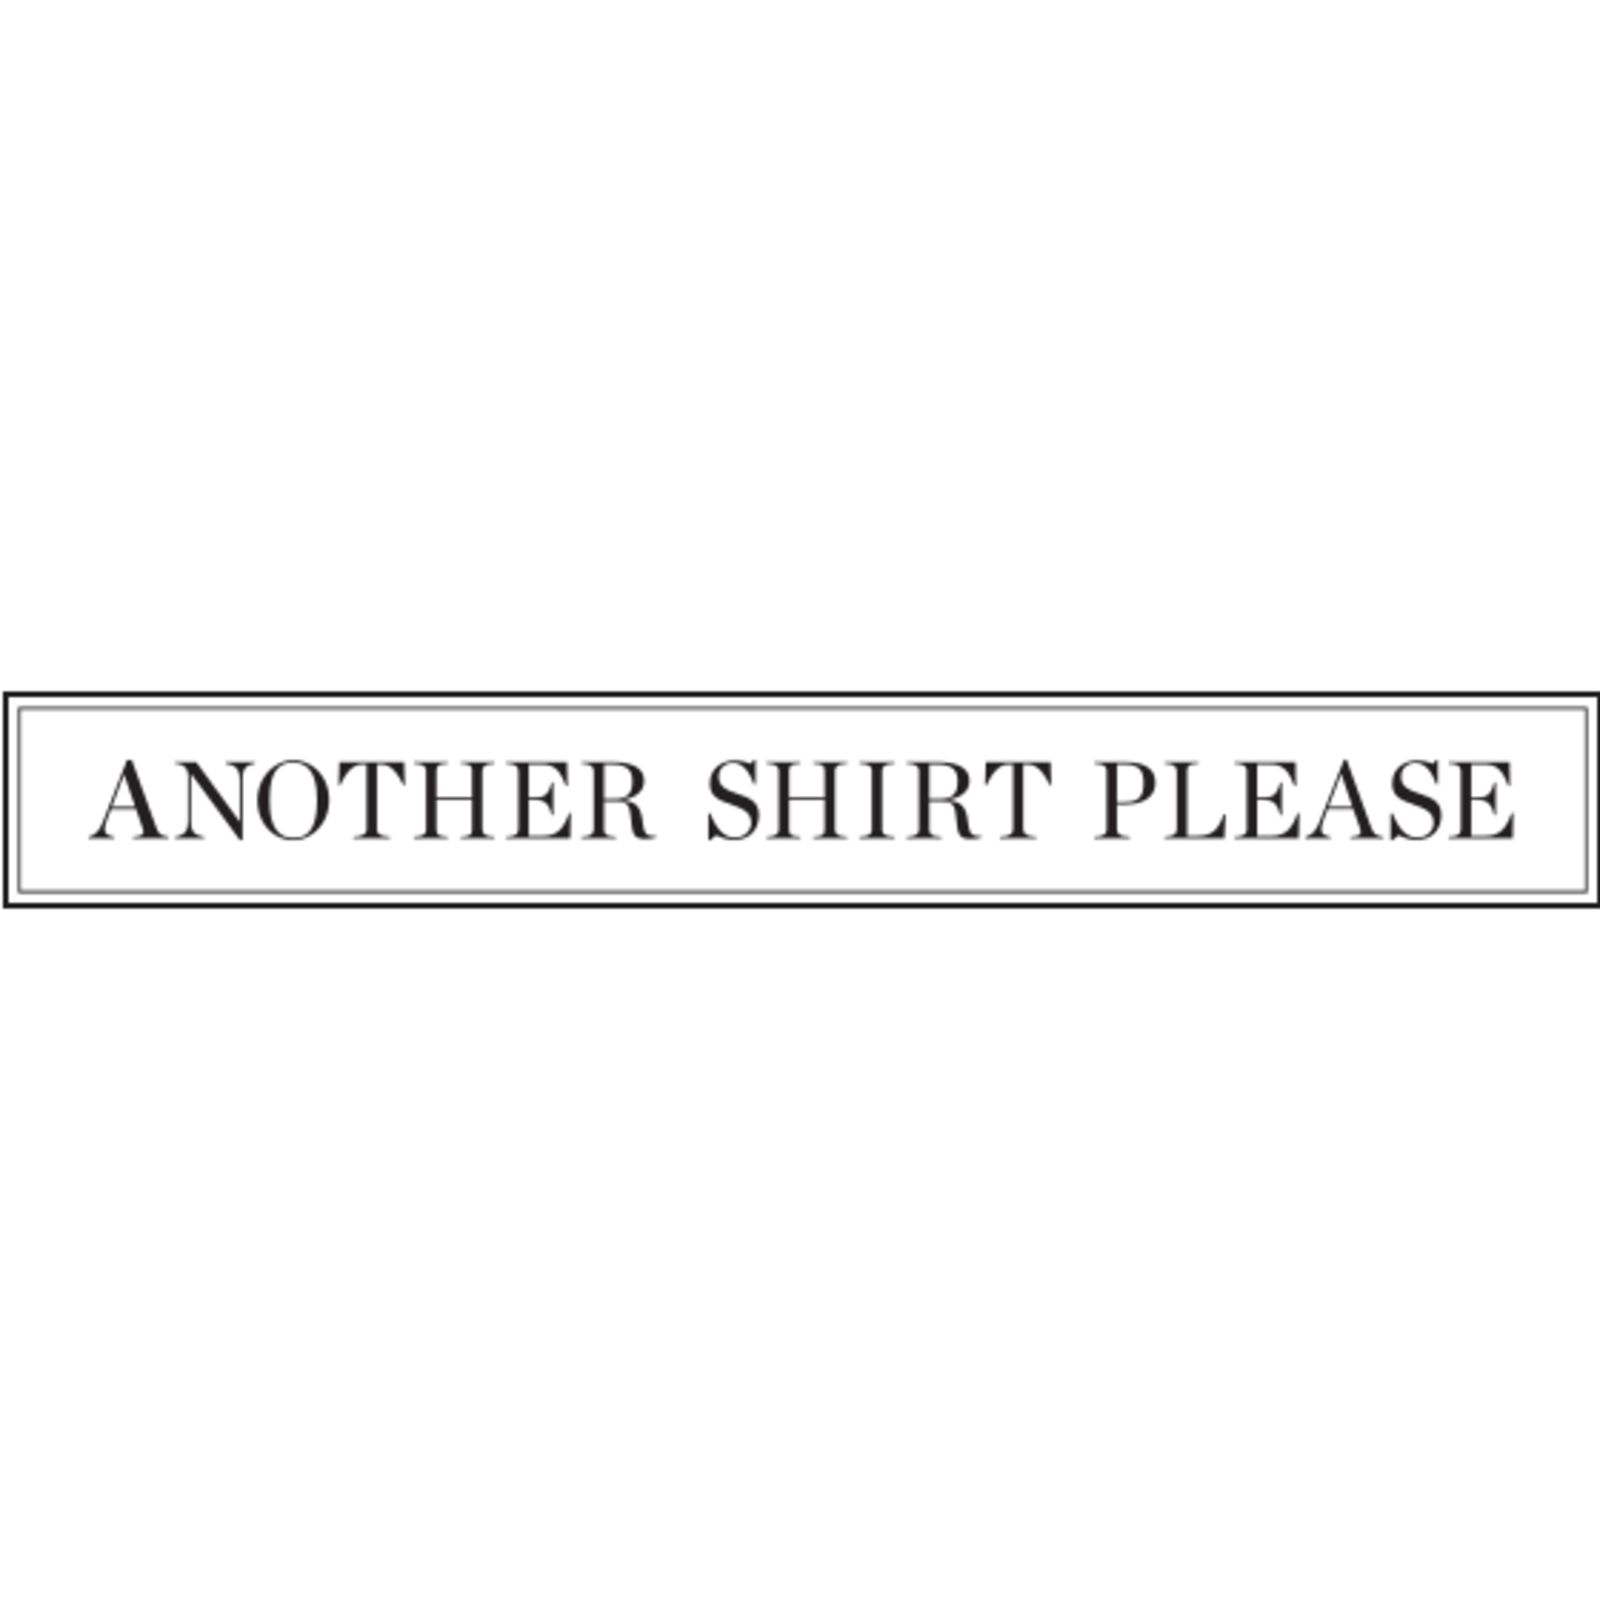 A.S.P. ANOTHER SHIRT PLEASE